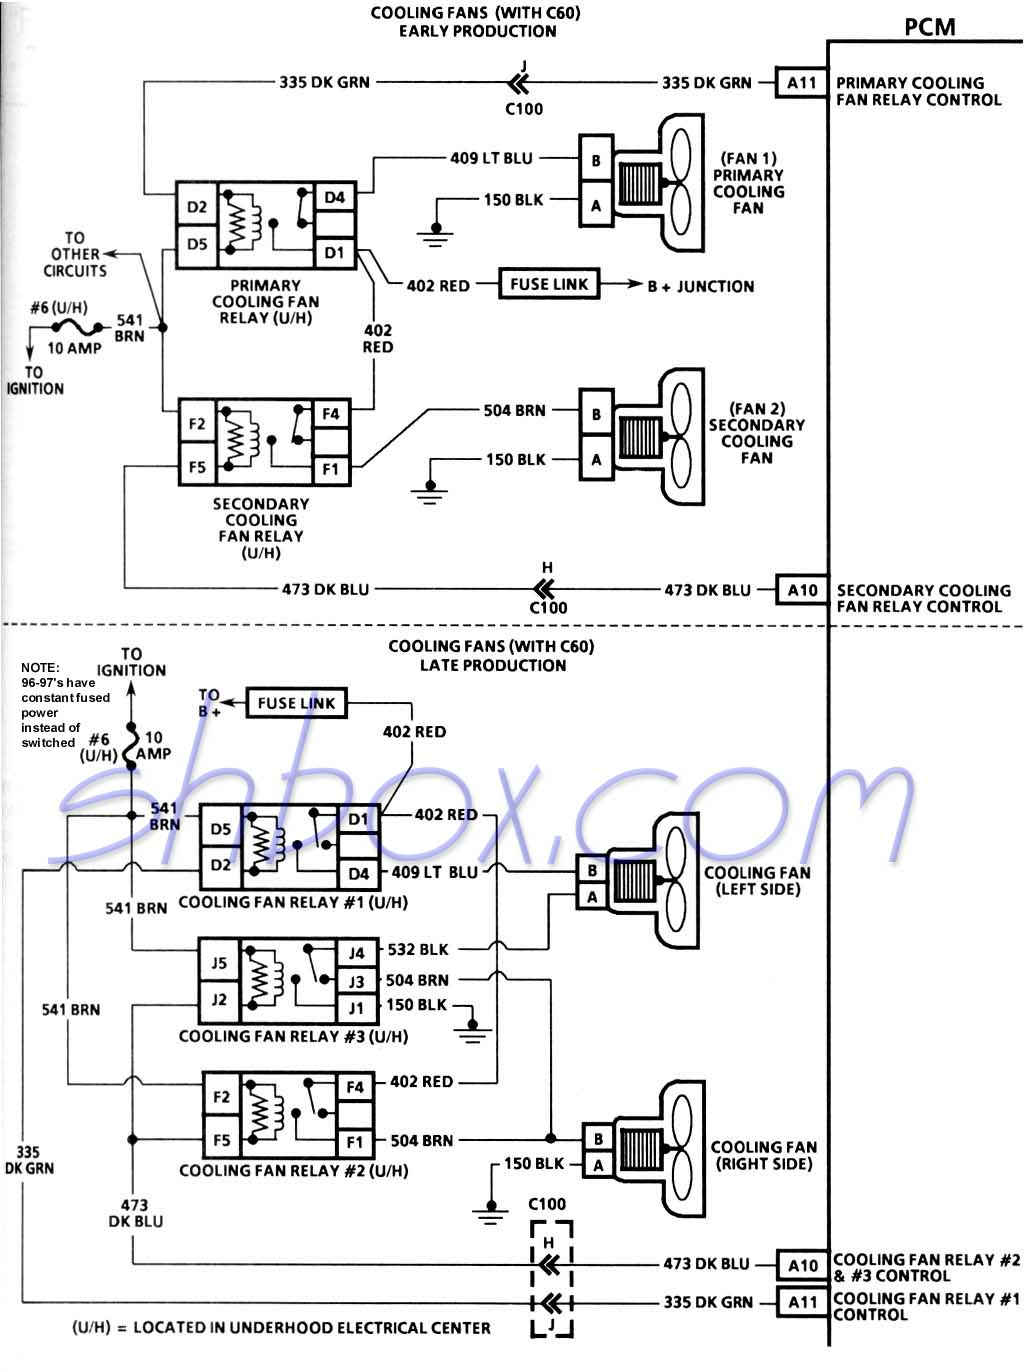 1991 Mazda Miata Fuse Box Wiring Diagram Library 1995 99 Cabrio Fuel Pump Relay Location Toyota Camry 91